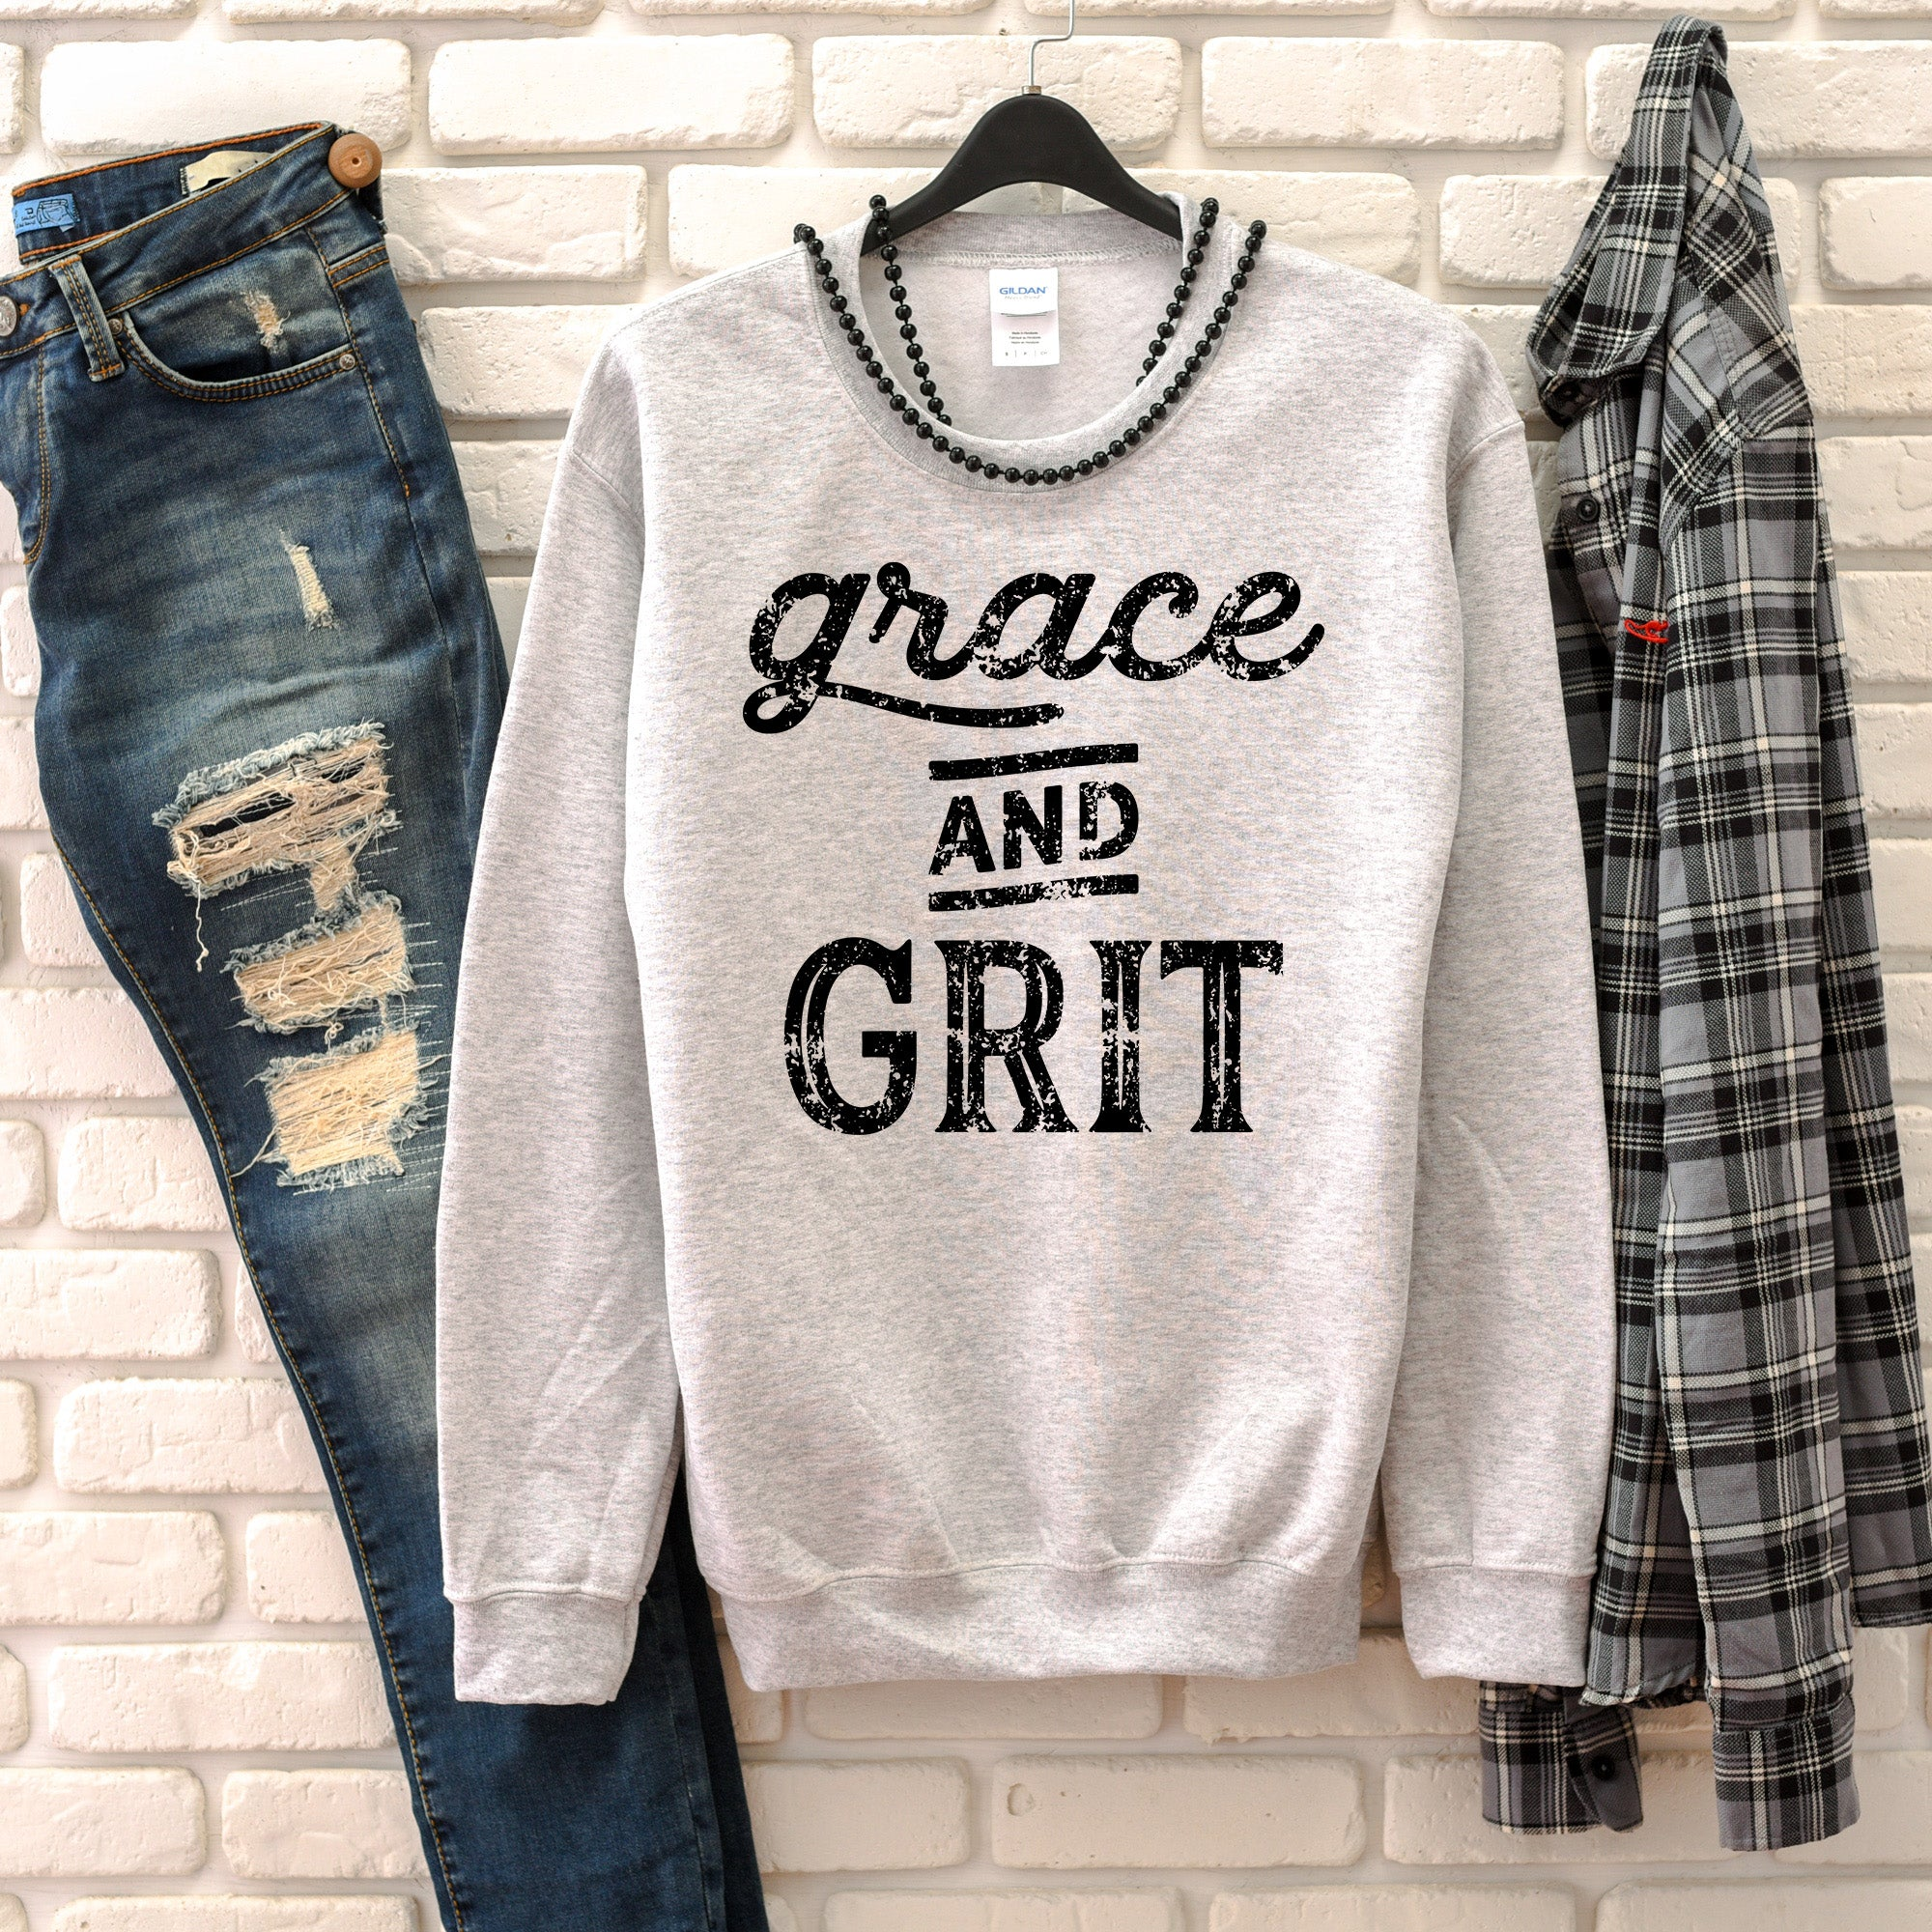 Grace and Grit Sweatshirt - Bella Faith - Christian Shirts for Women - Women's Faith Based Apparel - Christian Clothing for Women - Christian Jewelry and Gifts for Women - Trendy Christian Tees